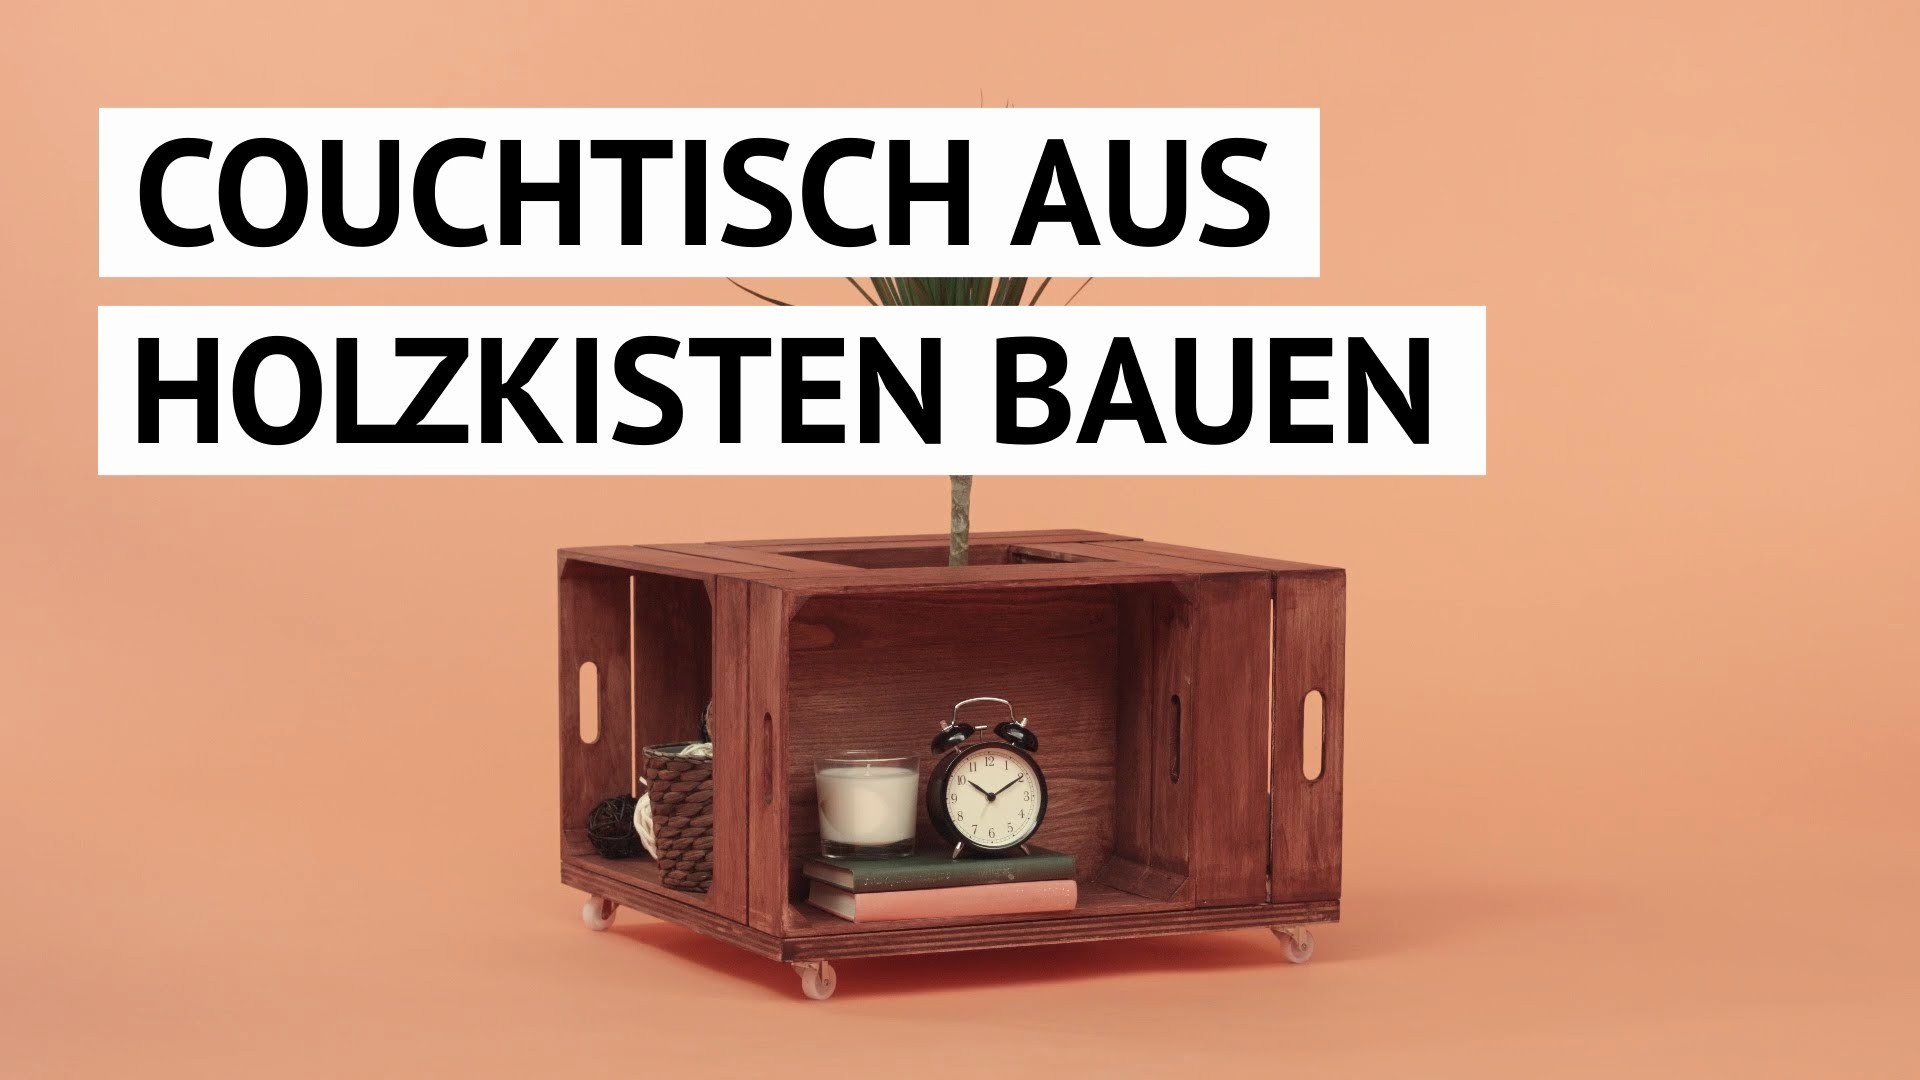 diy tutorial couchtisch aus weinkisten bauen. Black Bedroom Furniture Sets. Home Design Ideas